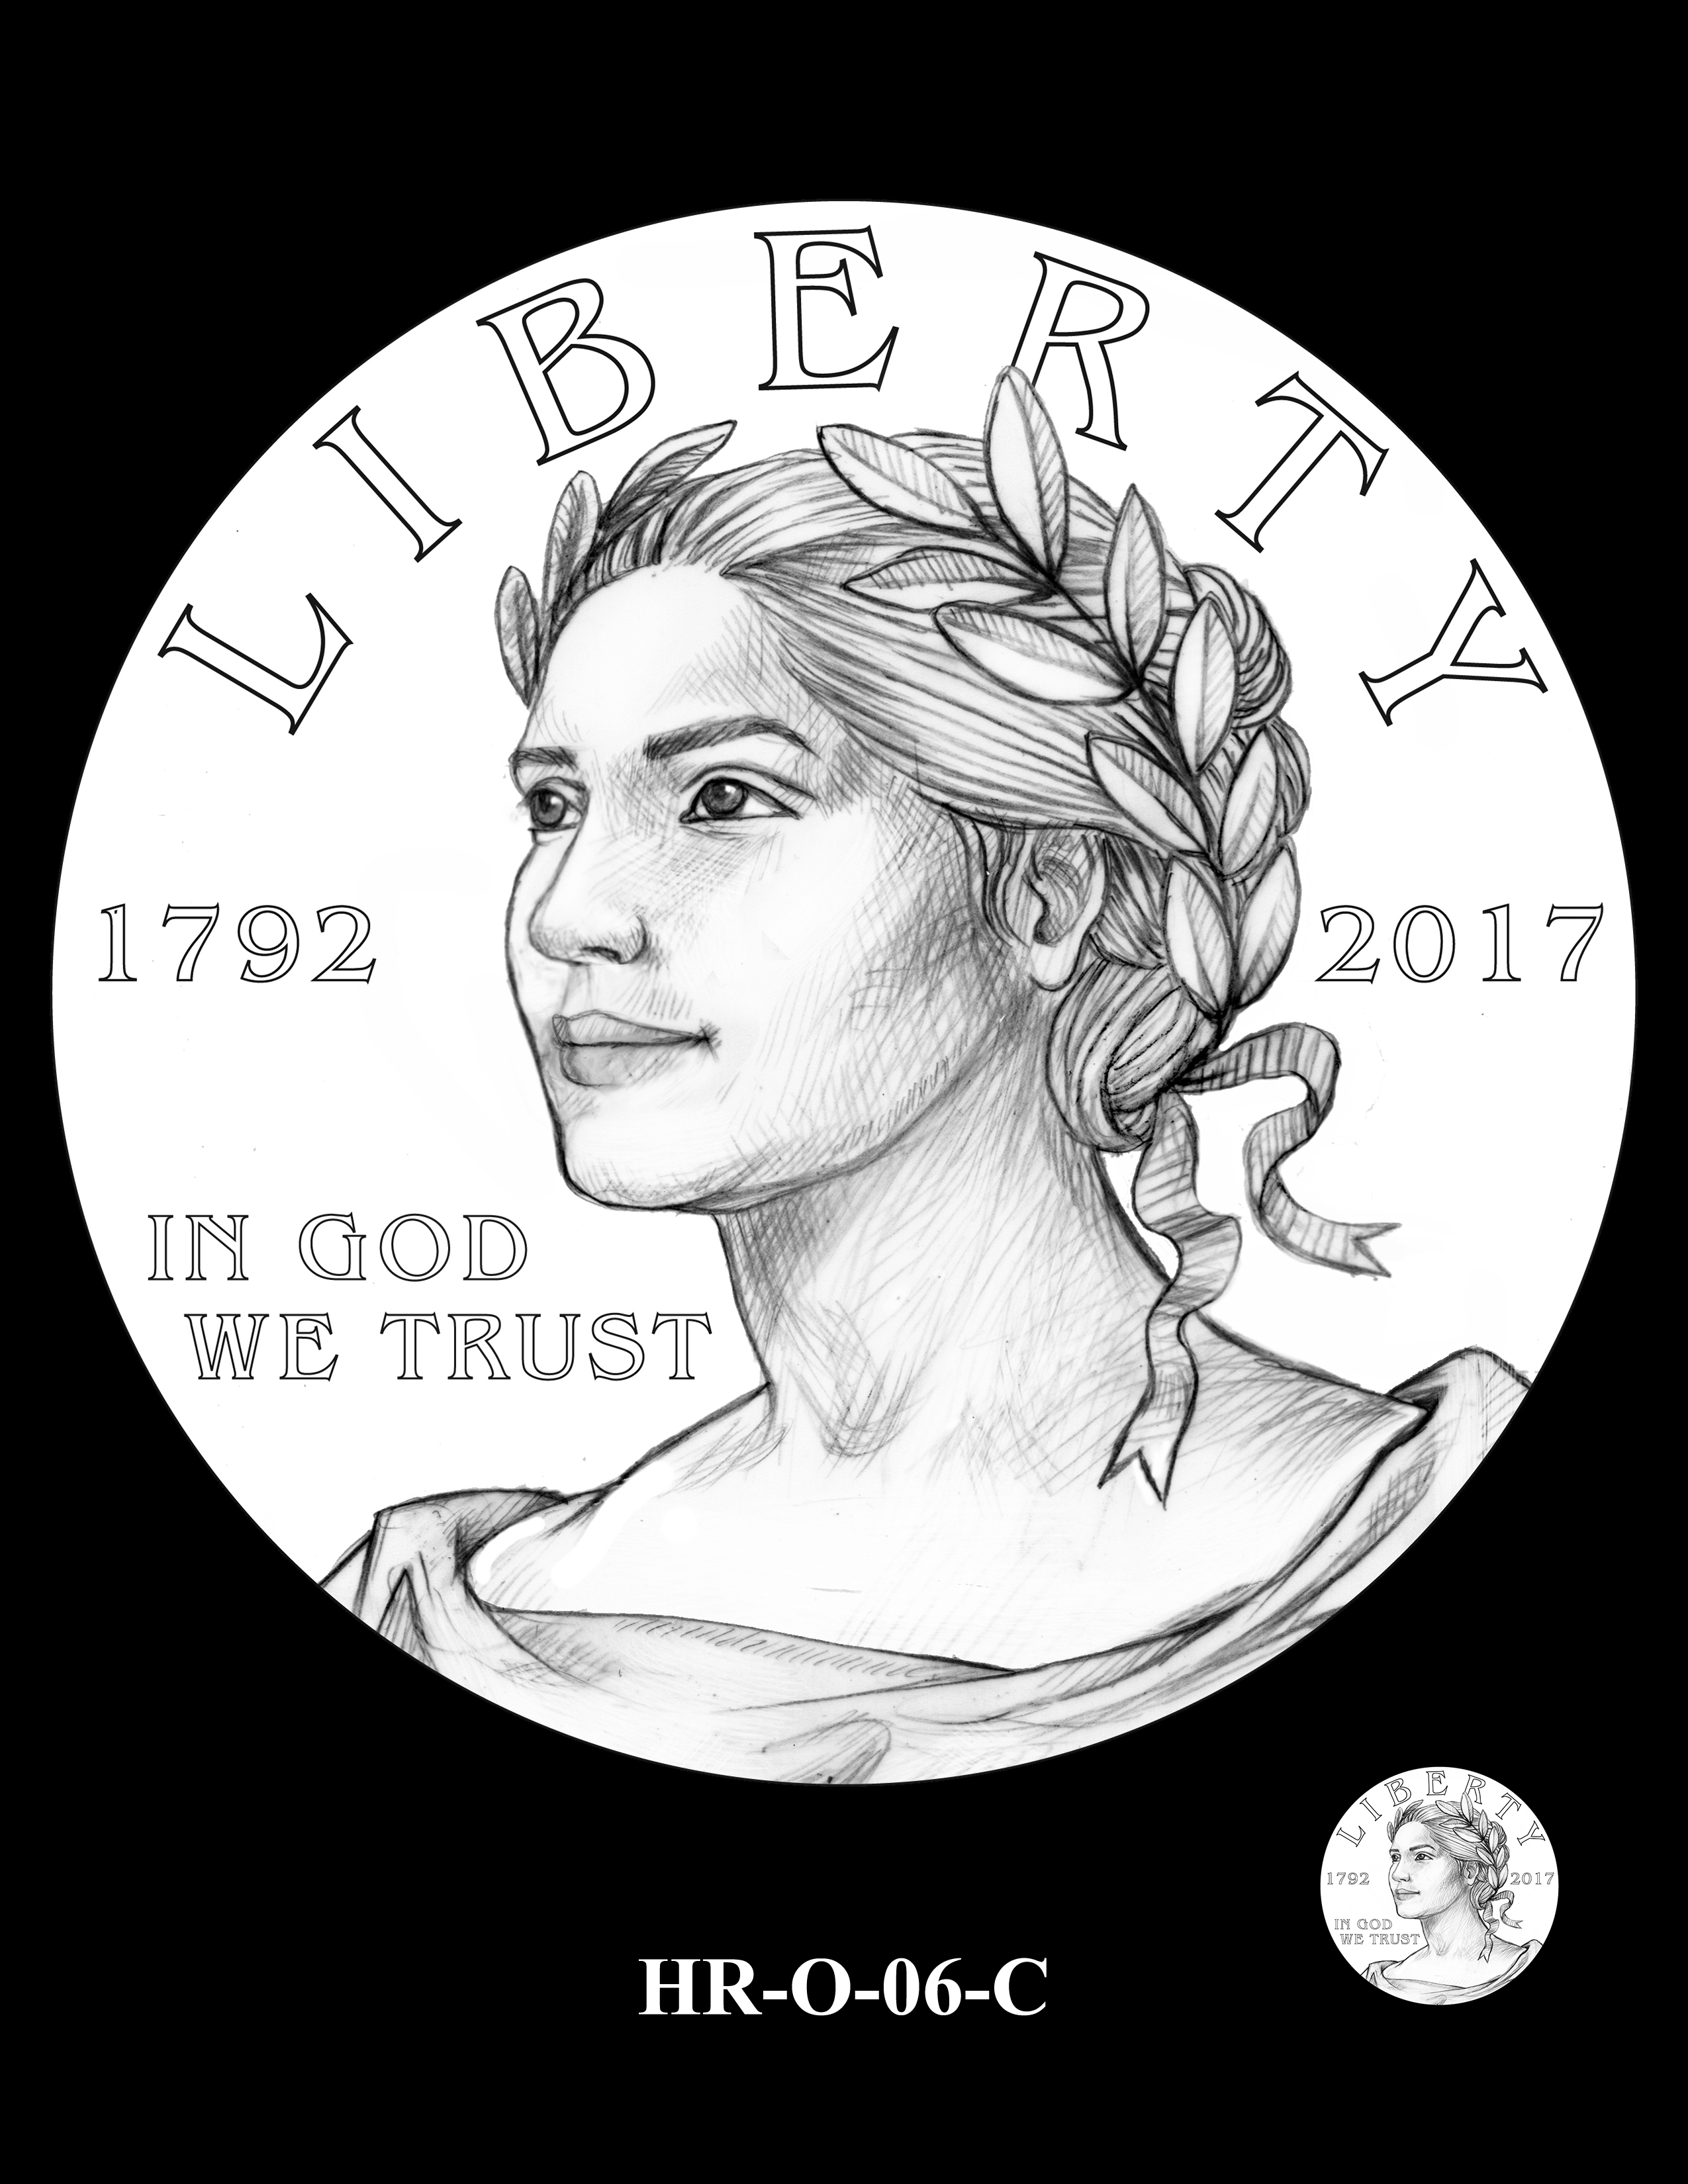 HR-O-06-C - 2017 American Liberty High Relief Gold Coin and Silver Medal Program